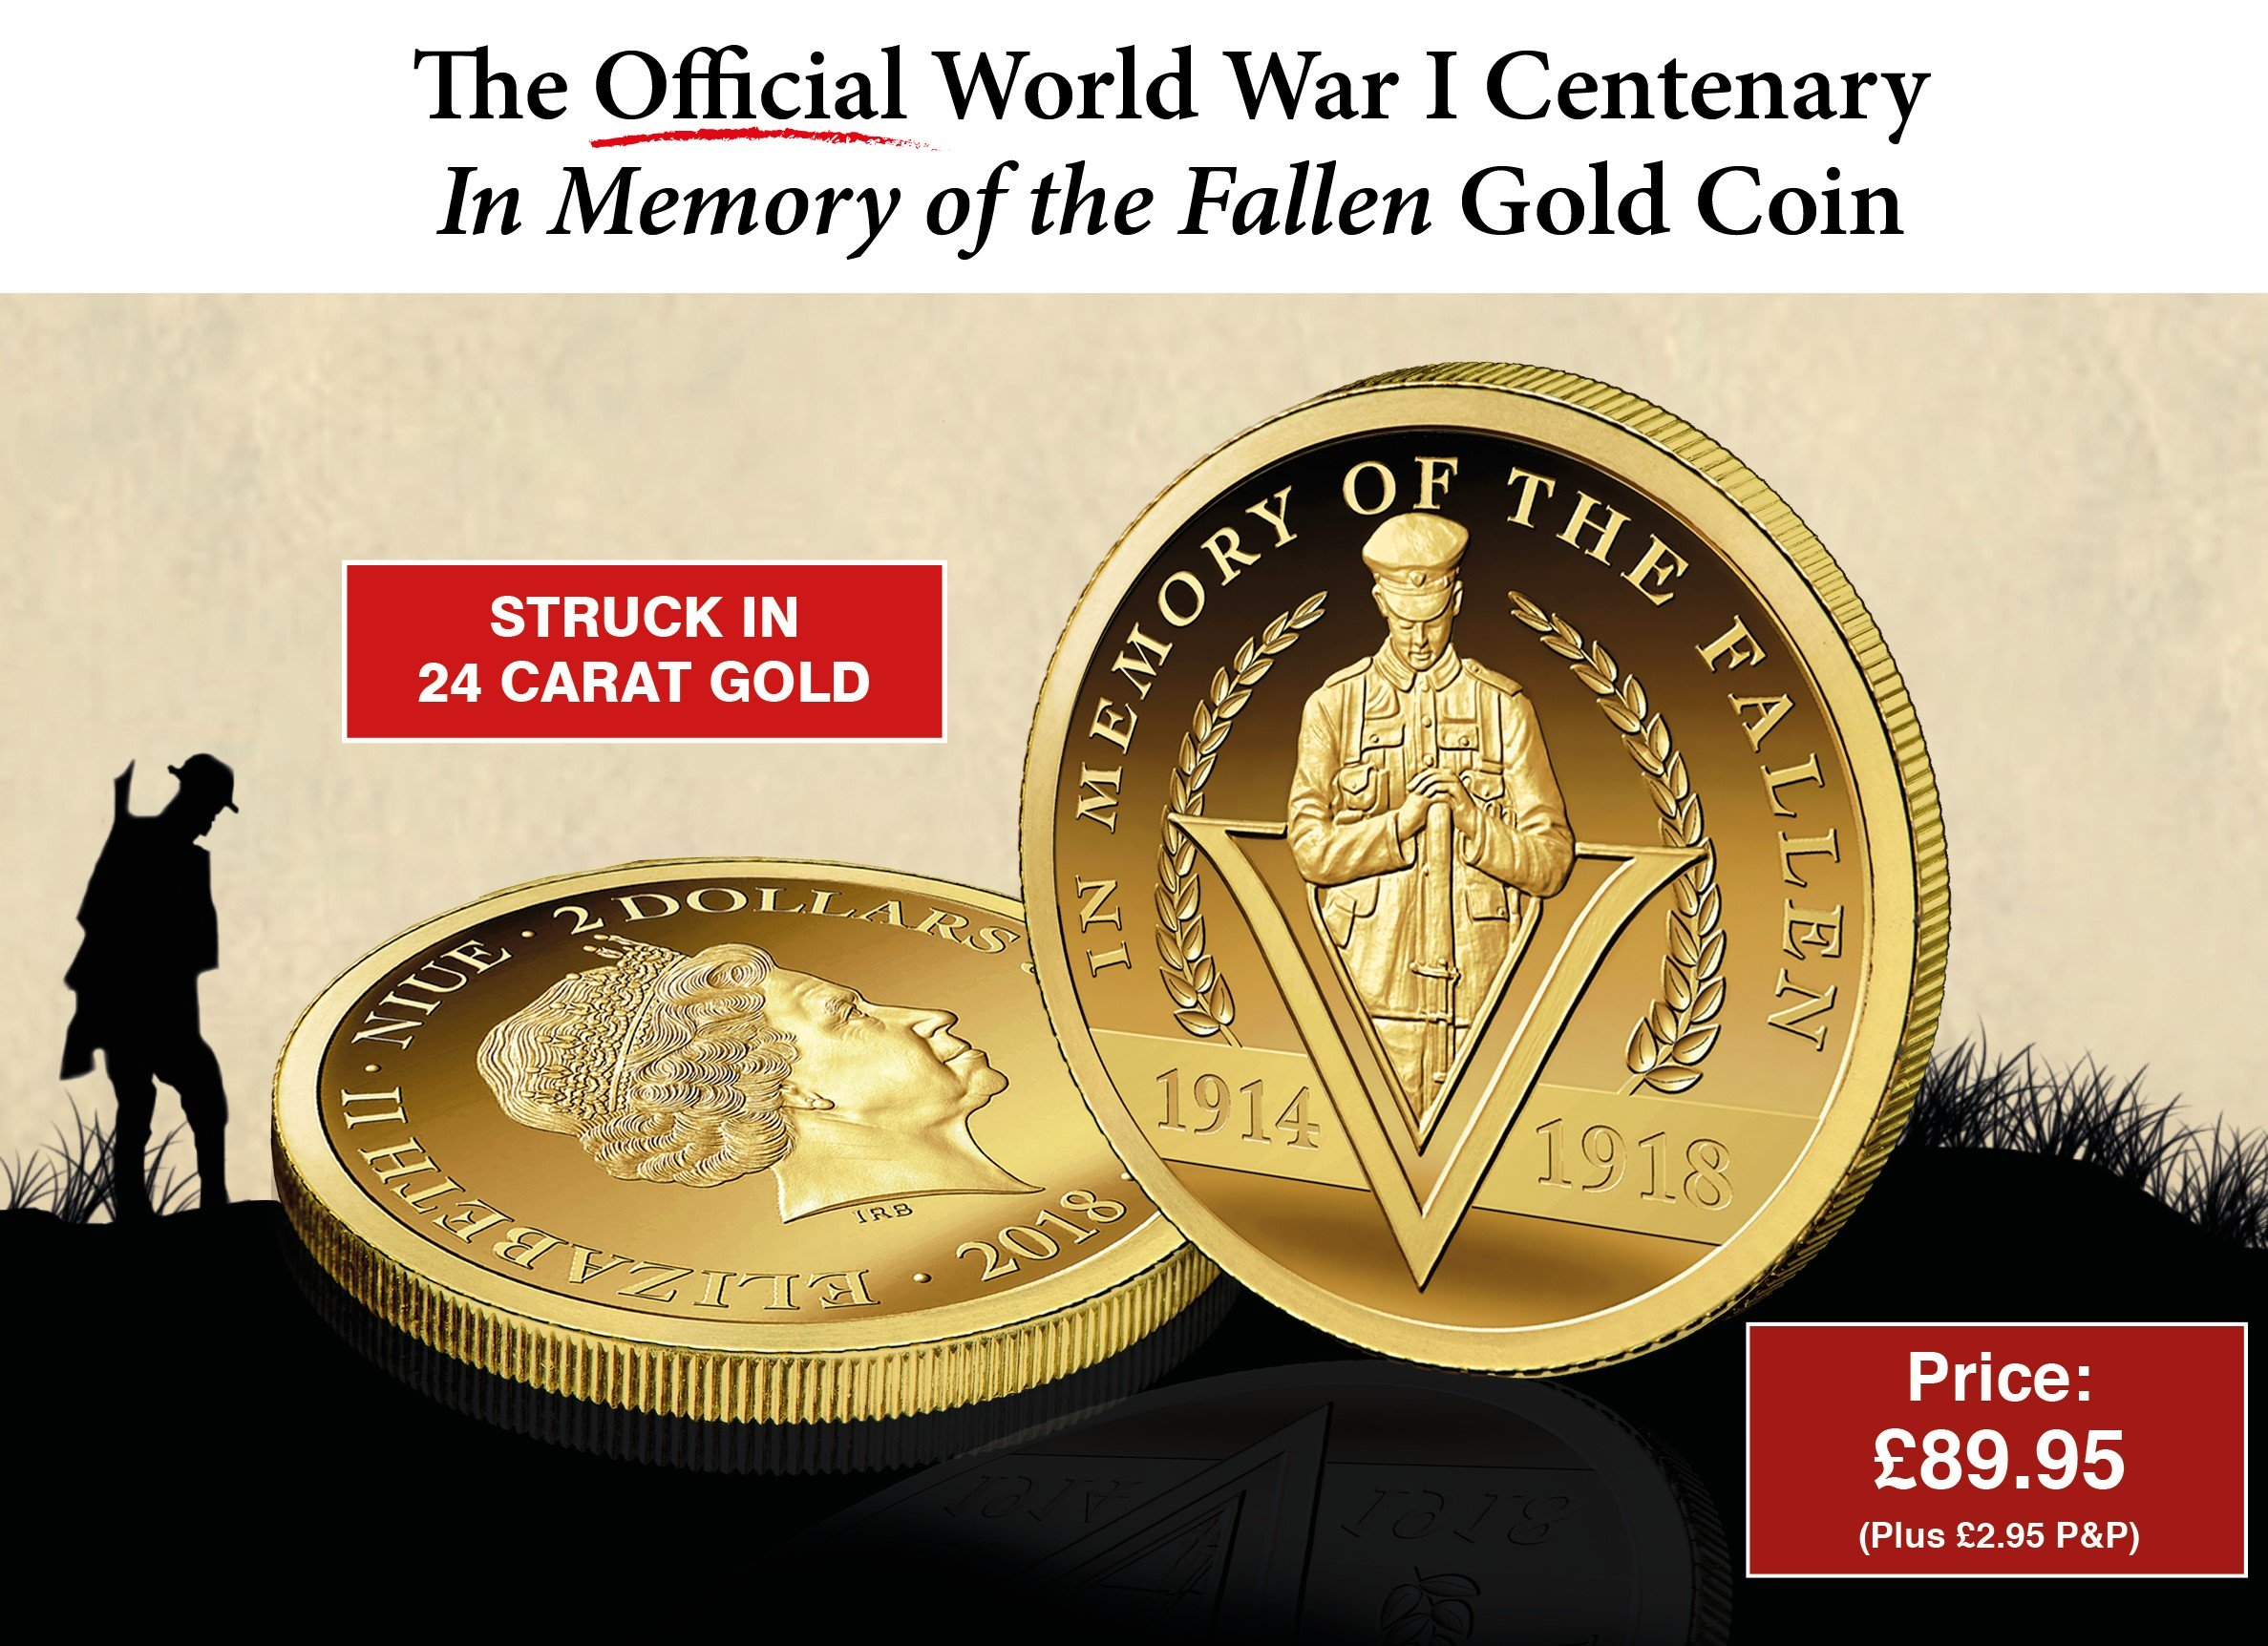 World War I Centenary Coin